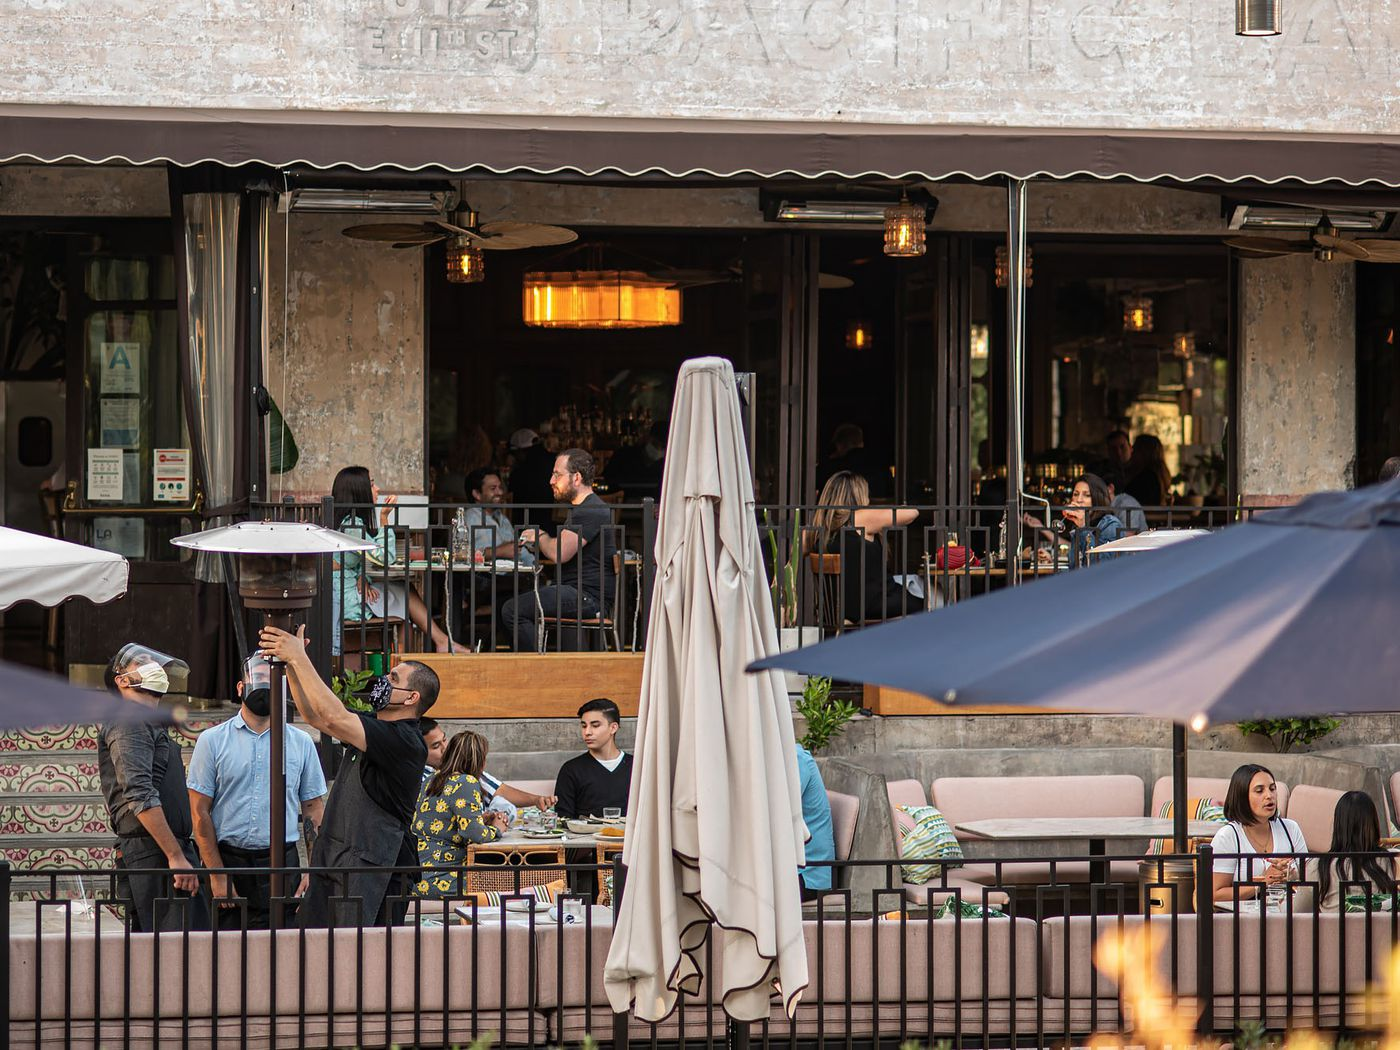 As COVID-19 Surges, LA County Shuts Down All Outdoor Restaurant Dining